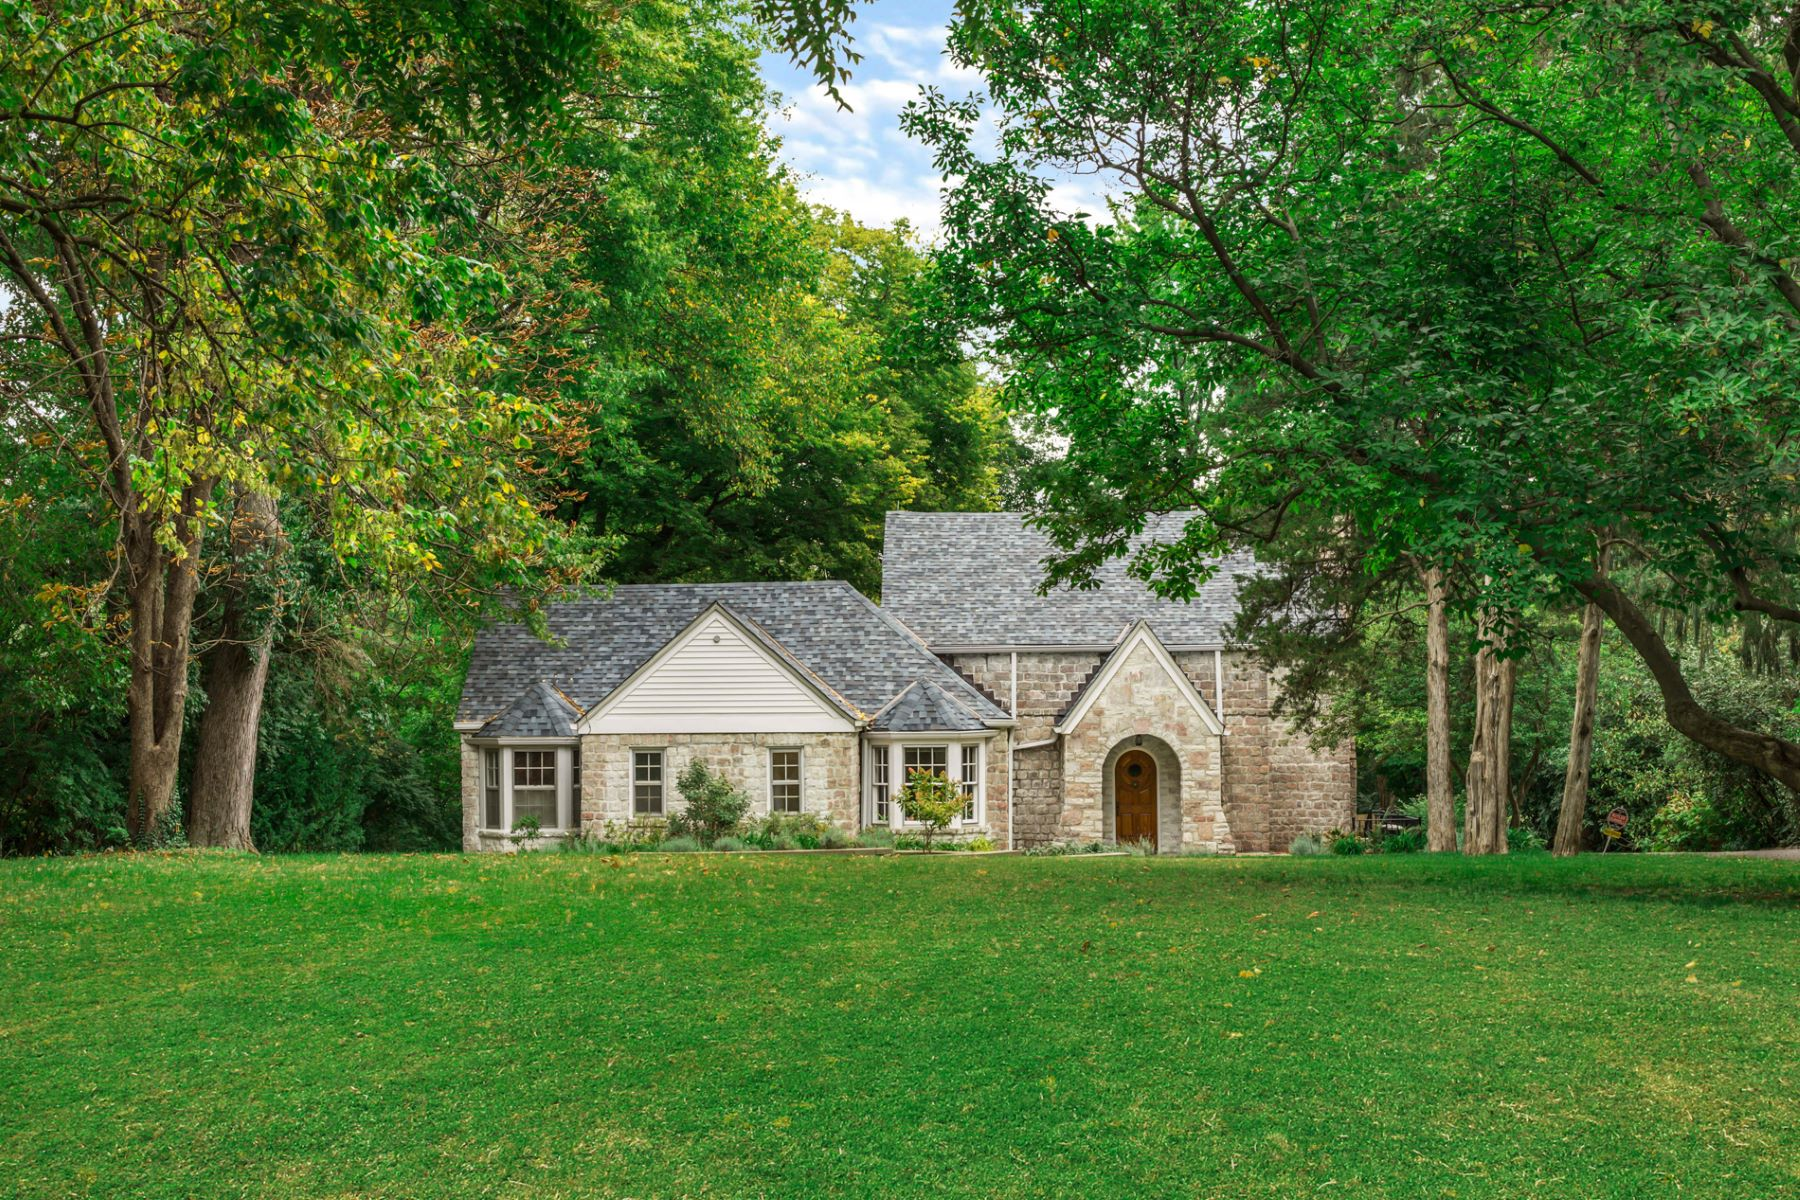 Single Family Homes для того Продажа на Beautiful Stone House in Ladue 9117 Clayton Road Ladue, Миссури 63124 Соединенные Штаты